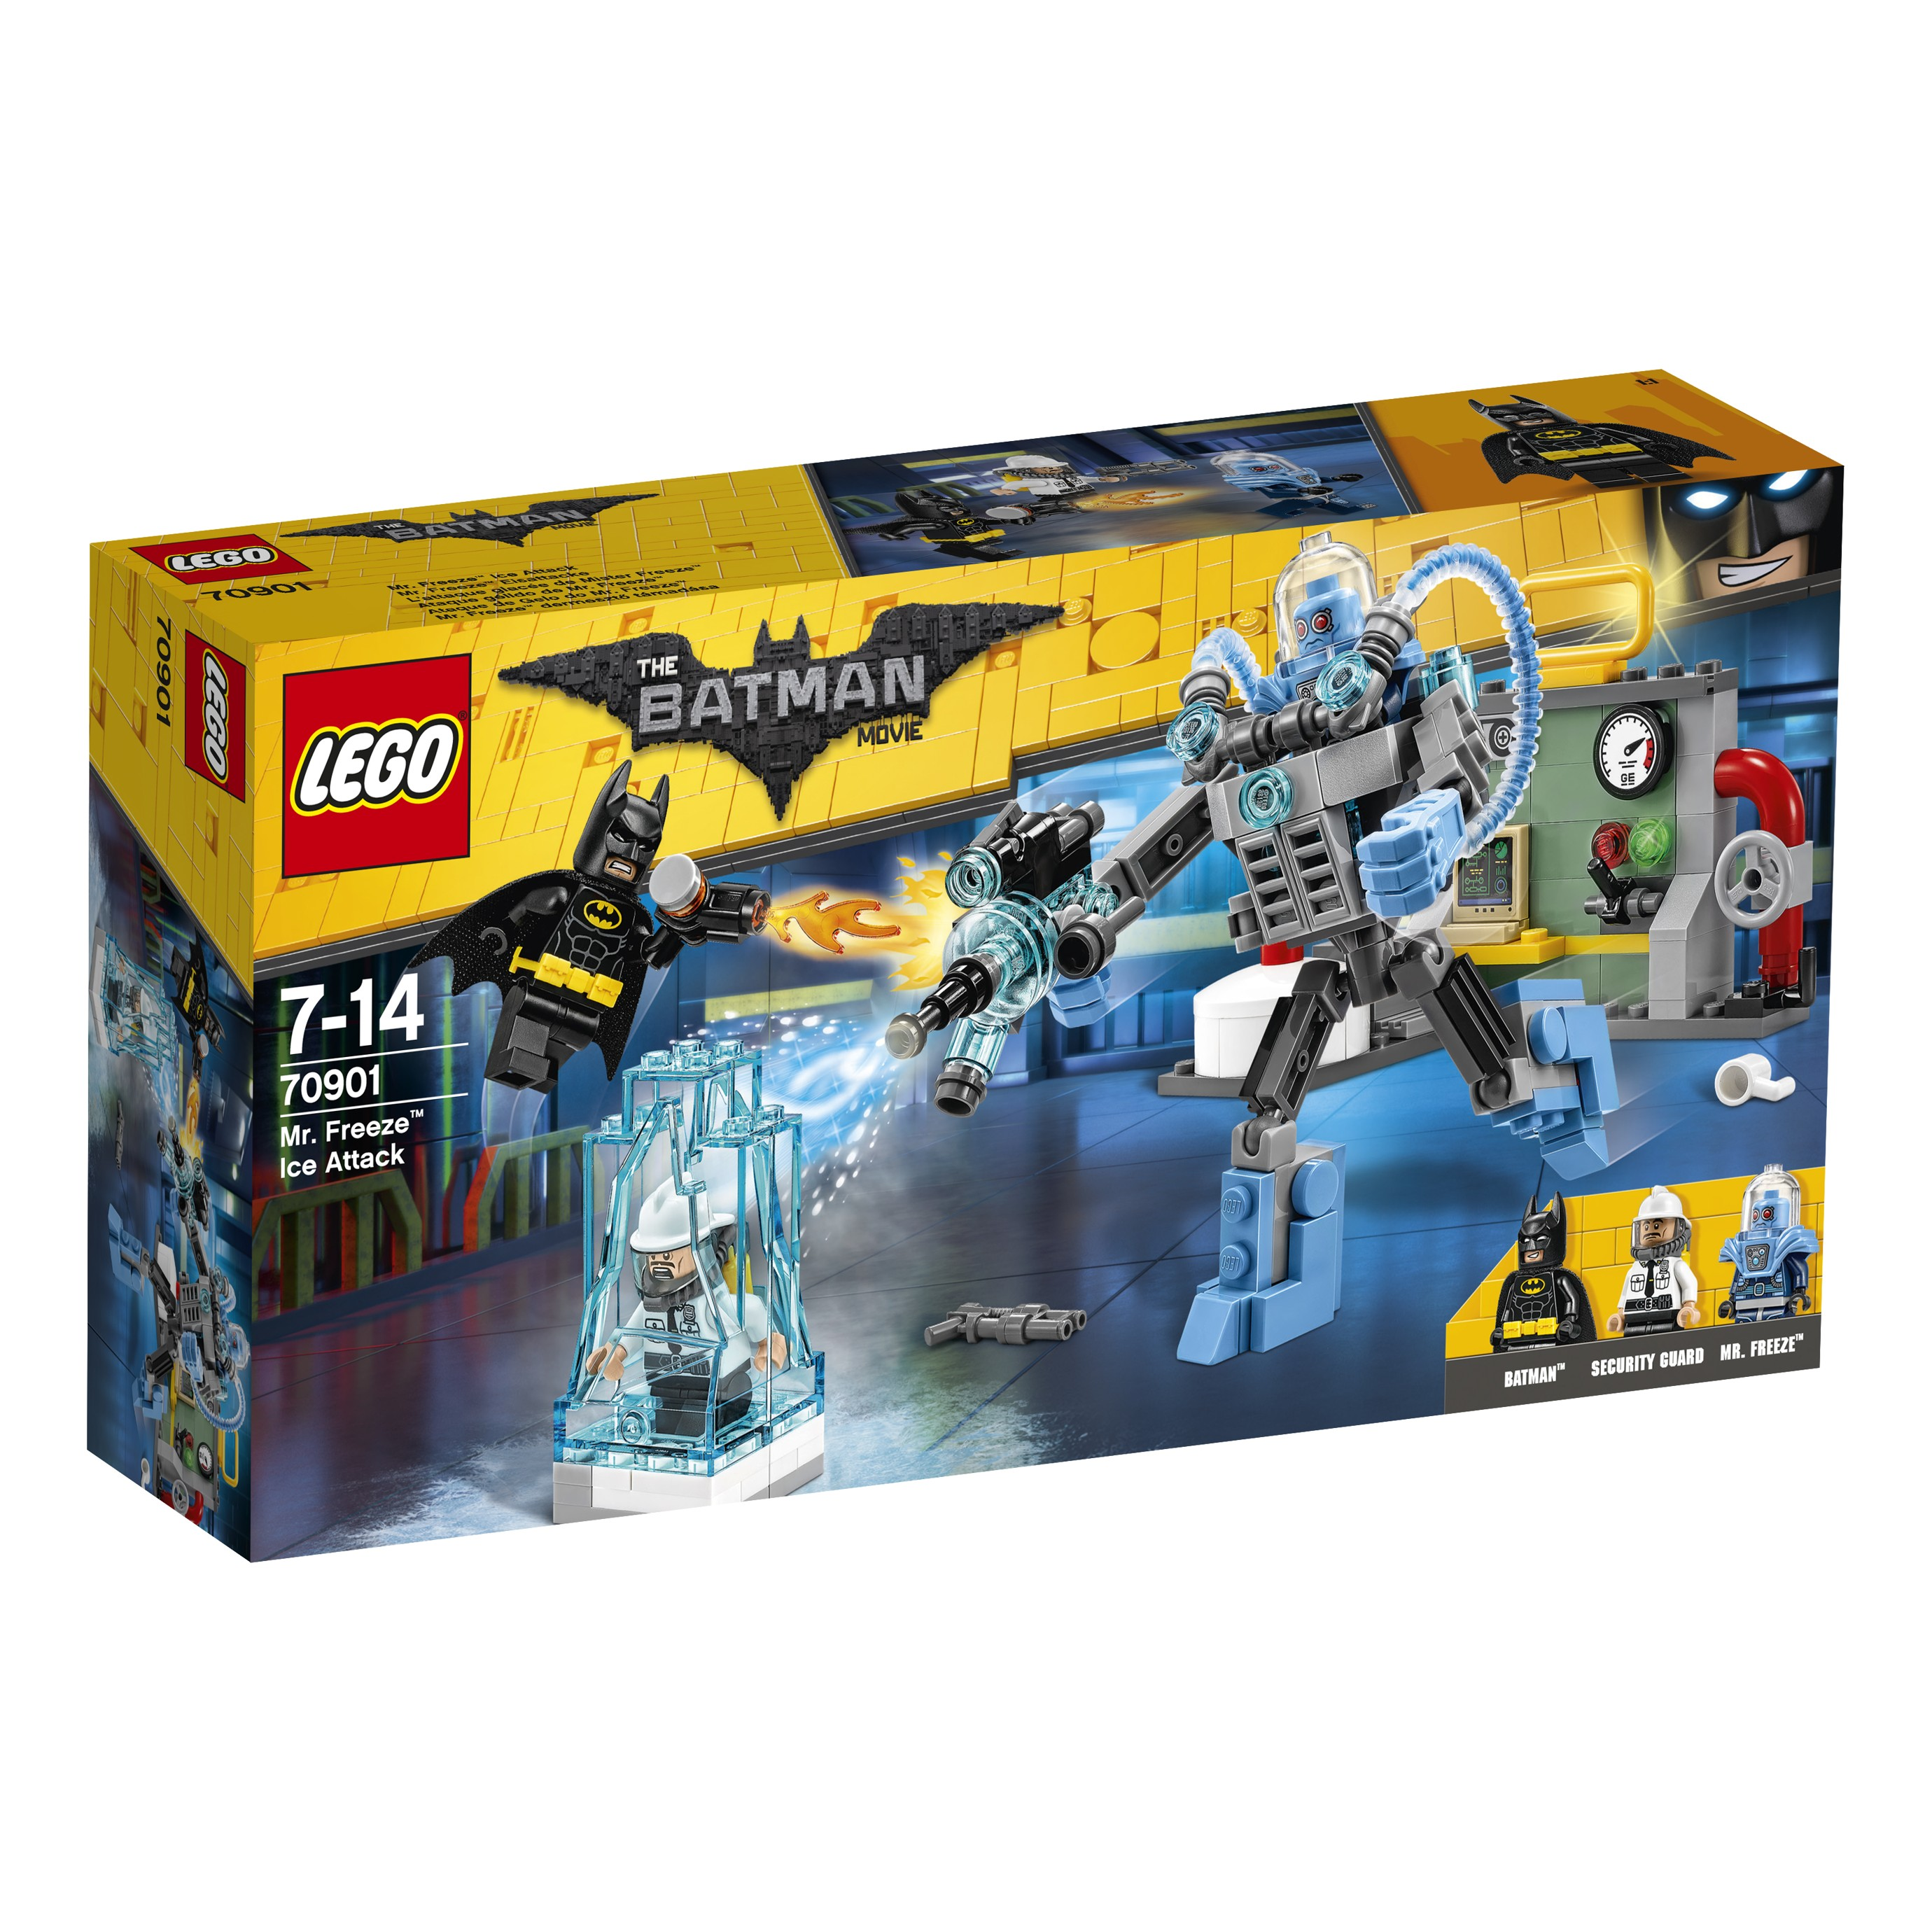 THE LEGO® BATMAN MOVIE 70901 Ledový útok Mr. Freeze™